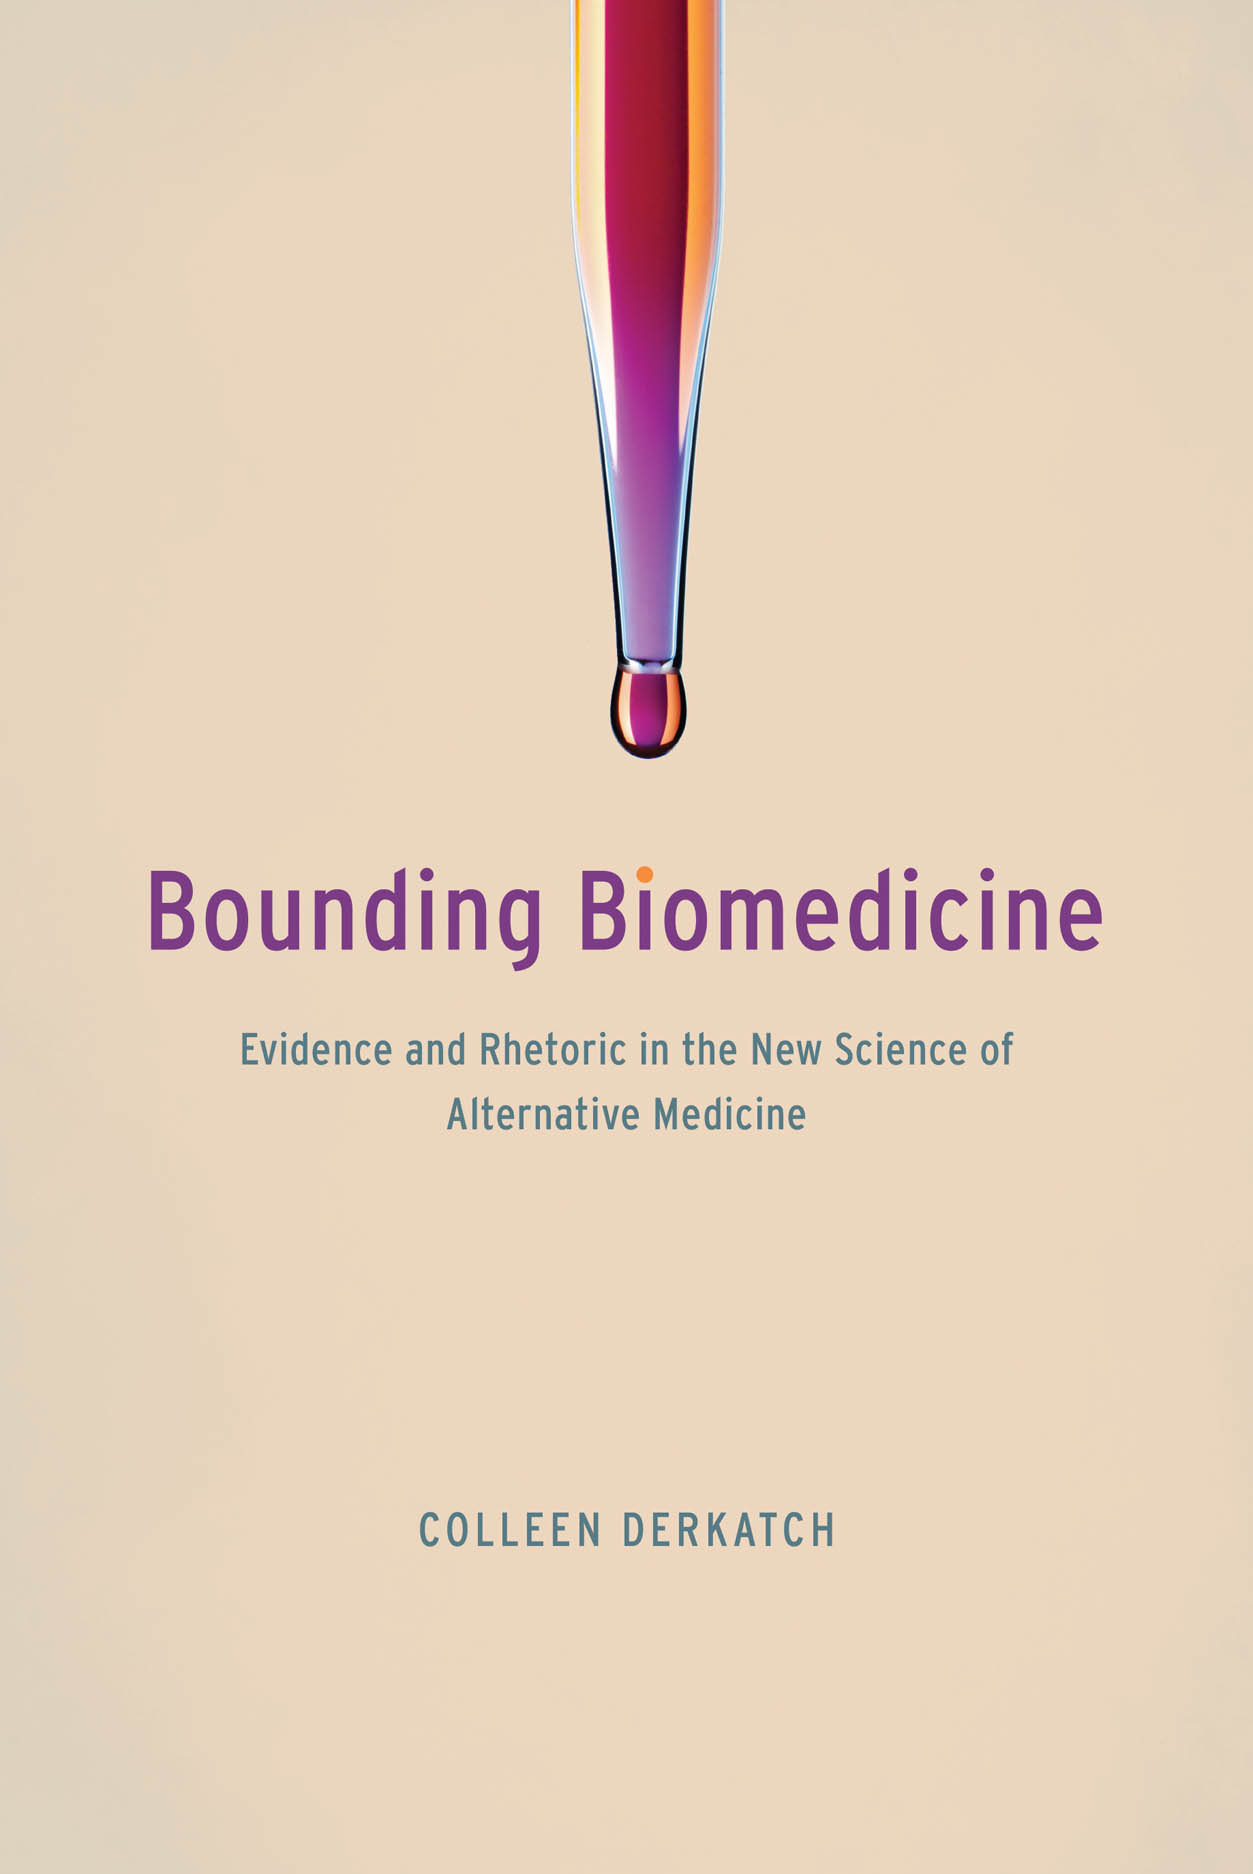 Bounding Biomedicine: Evidence and Rhetoric in the New Science of Alternative Medicine